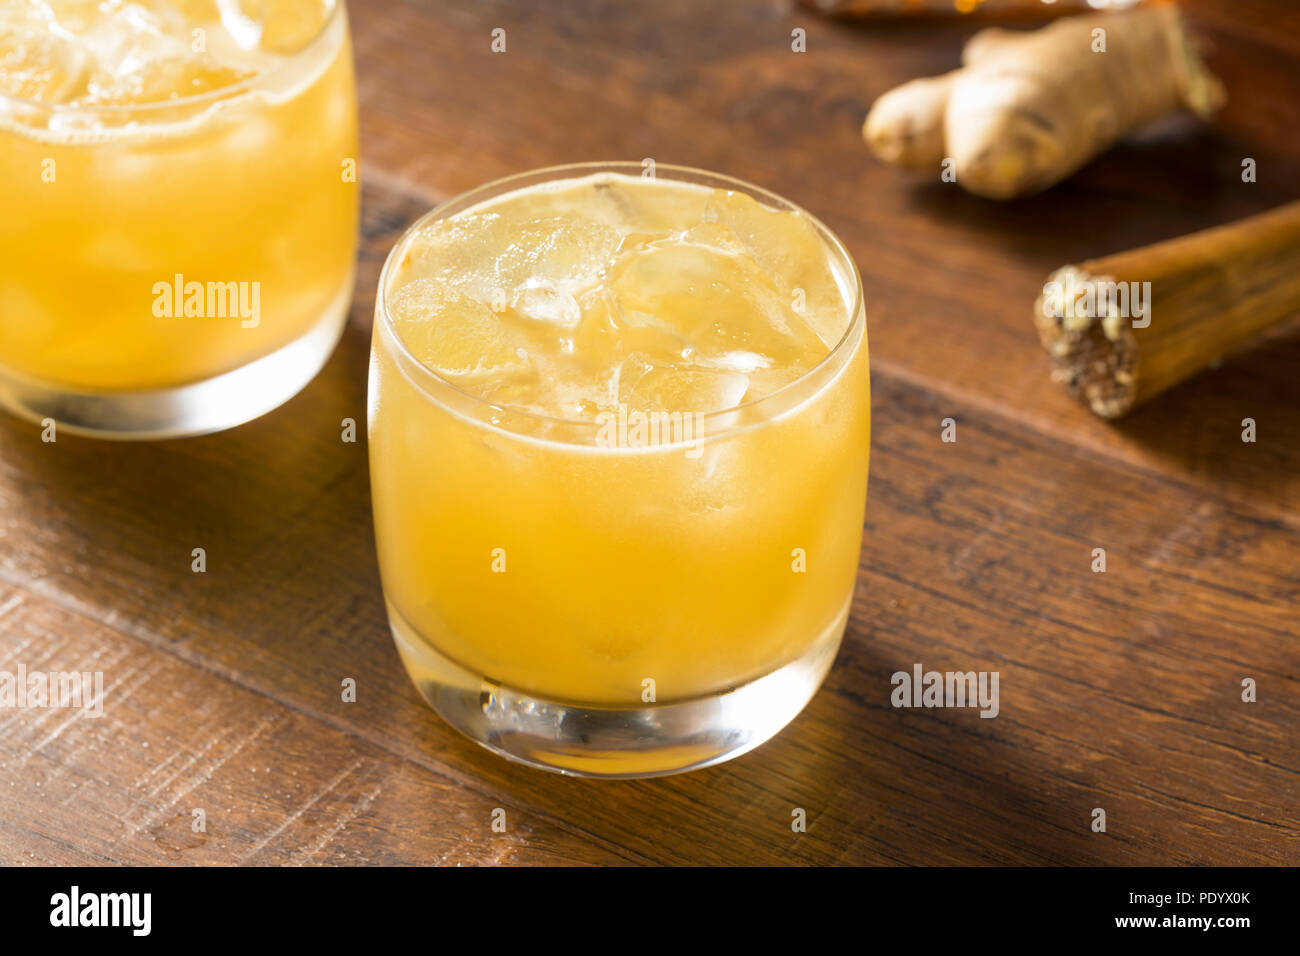 Alcoholic Scotch Penicillin Cocktail with Lemon and Ginger - Stock Image